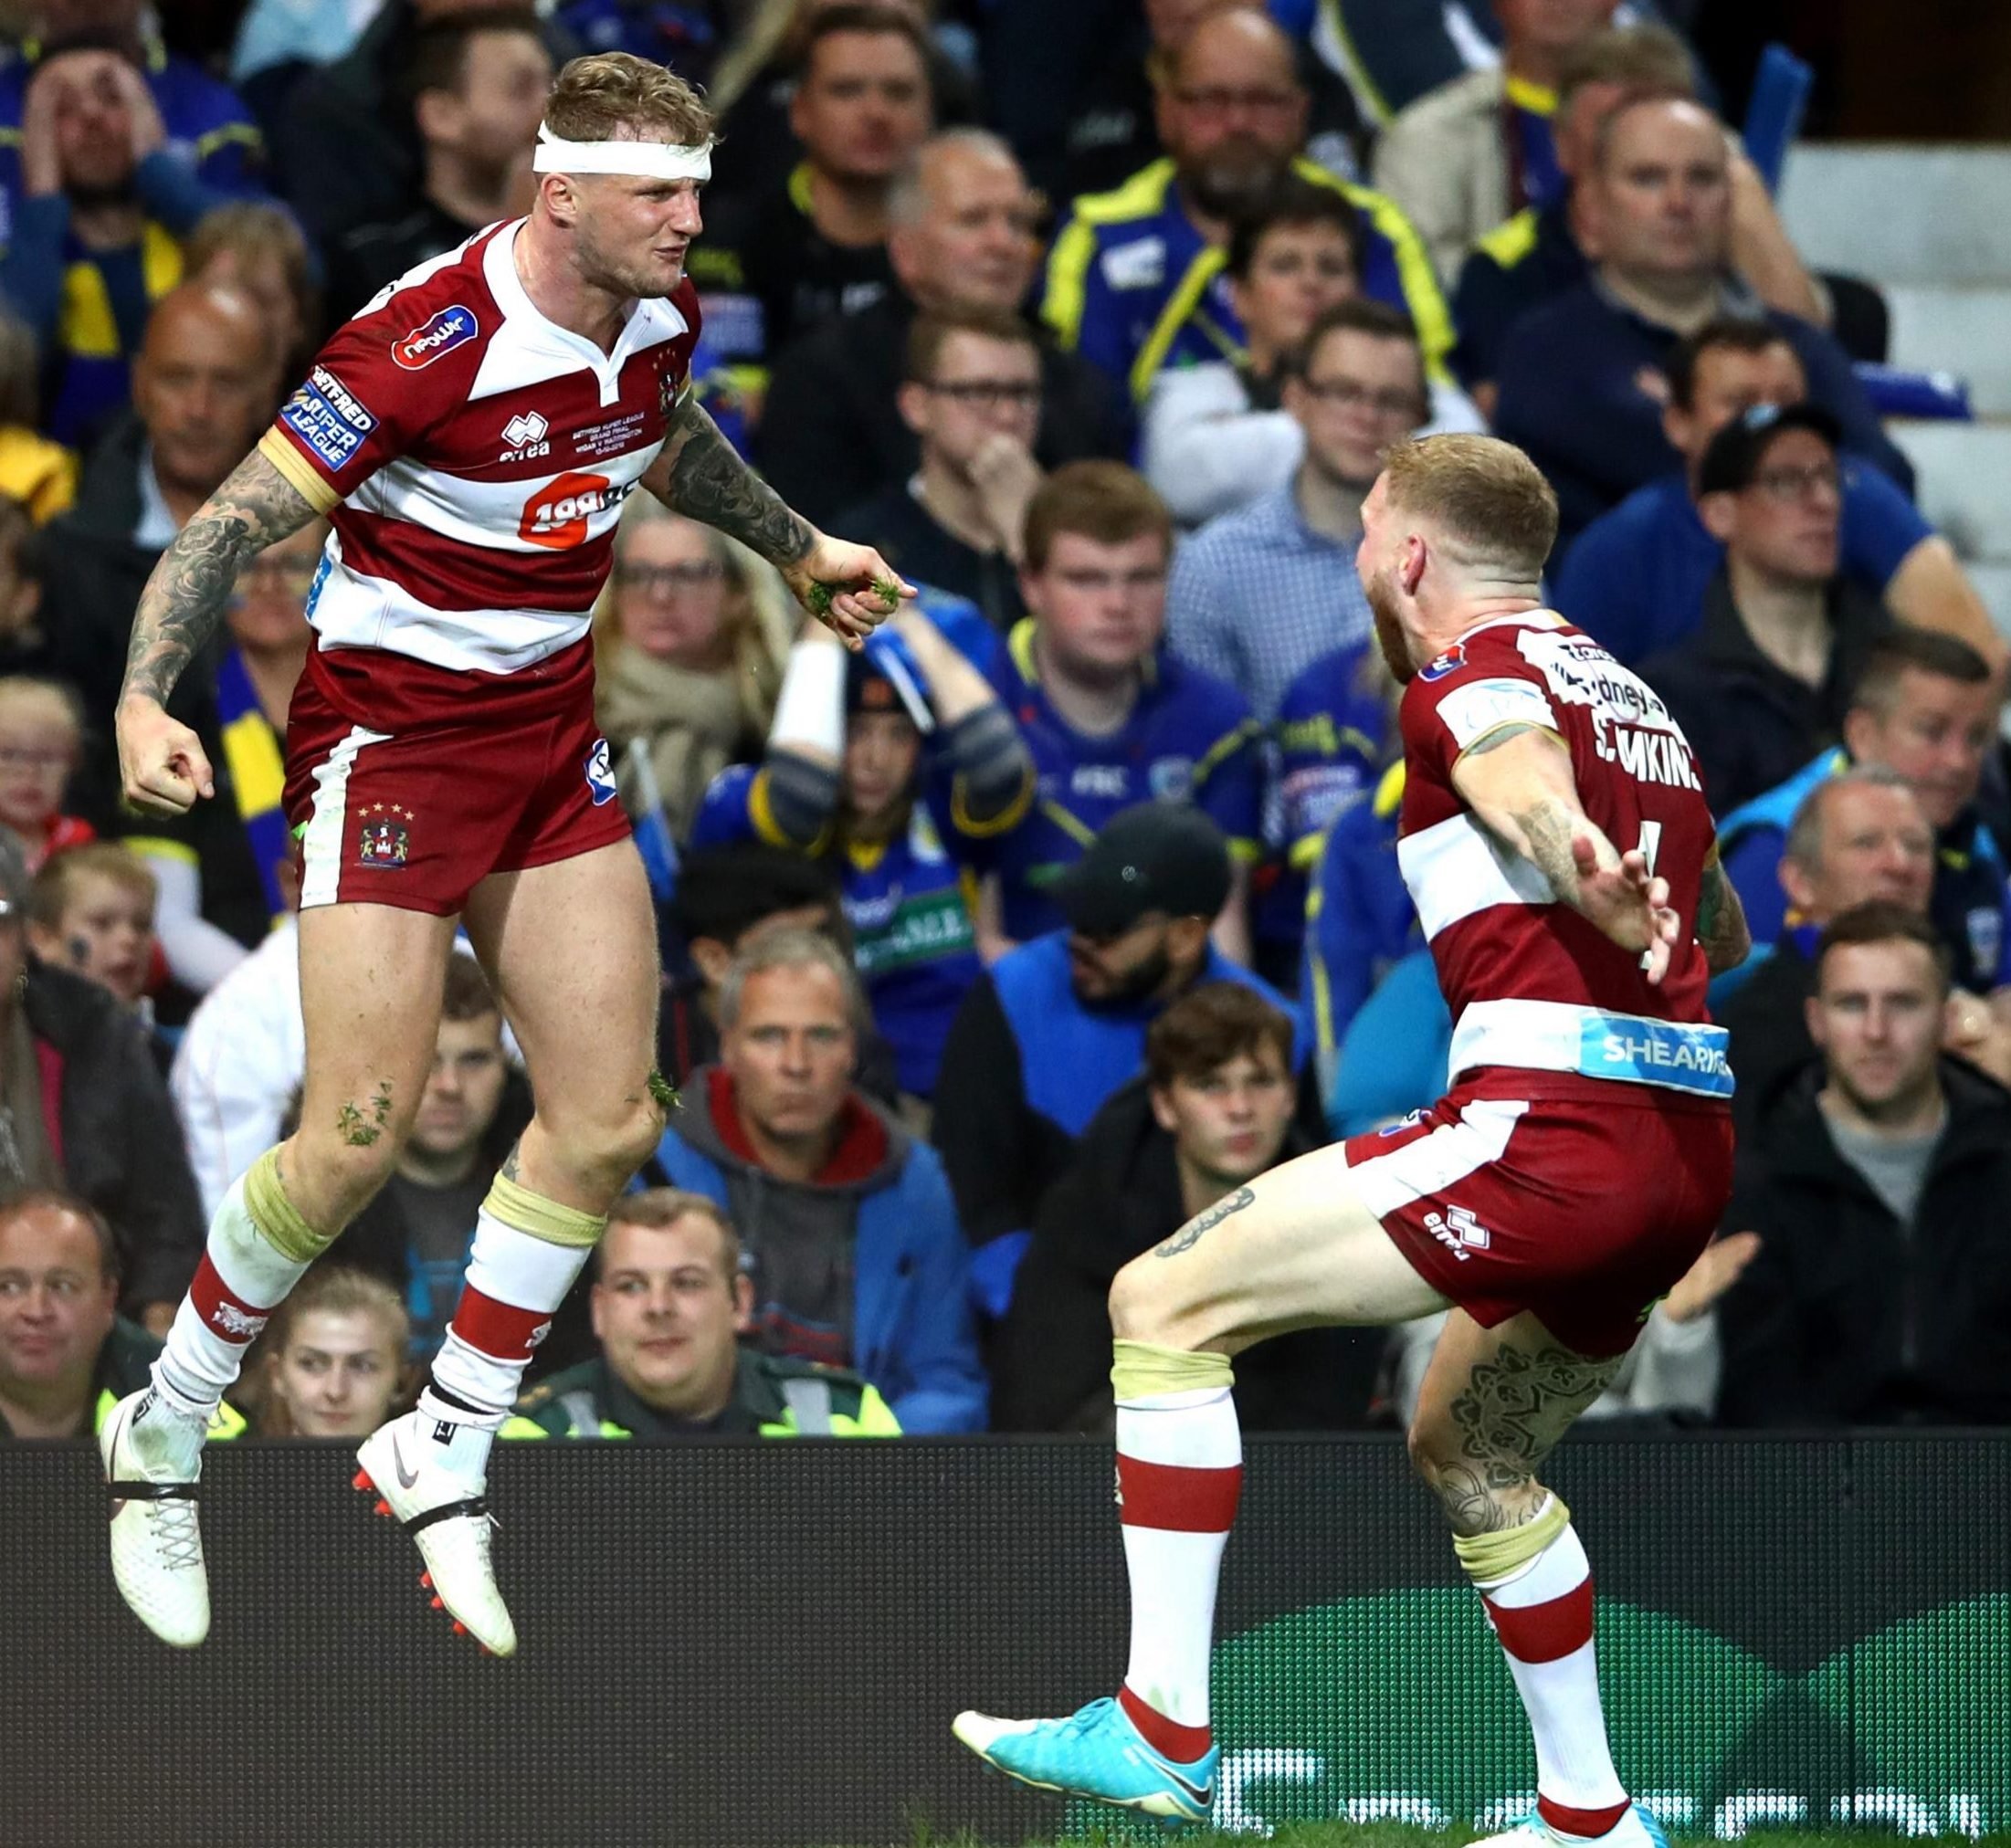 Two-try Dom Manfredi shares victory joy with Wigan team-mate Sam Tomkins